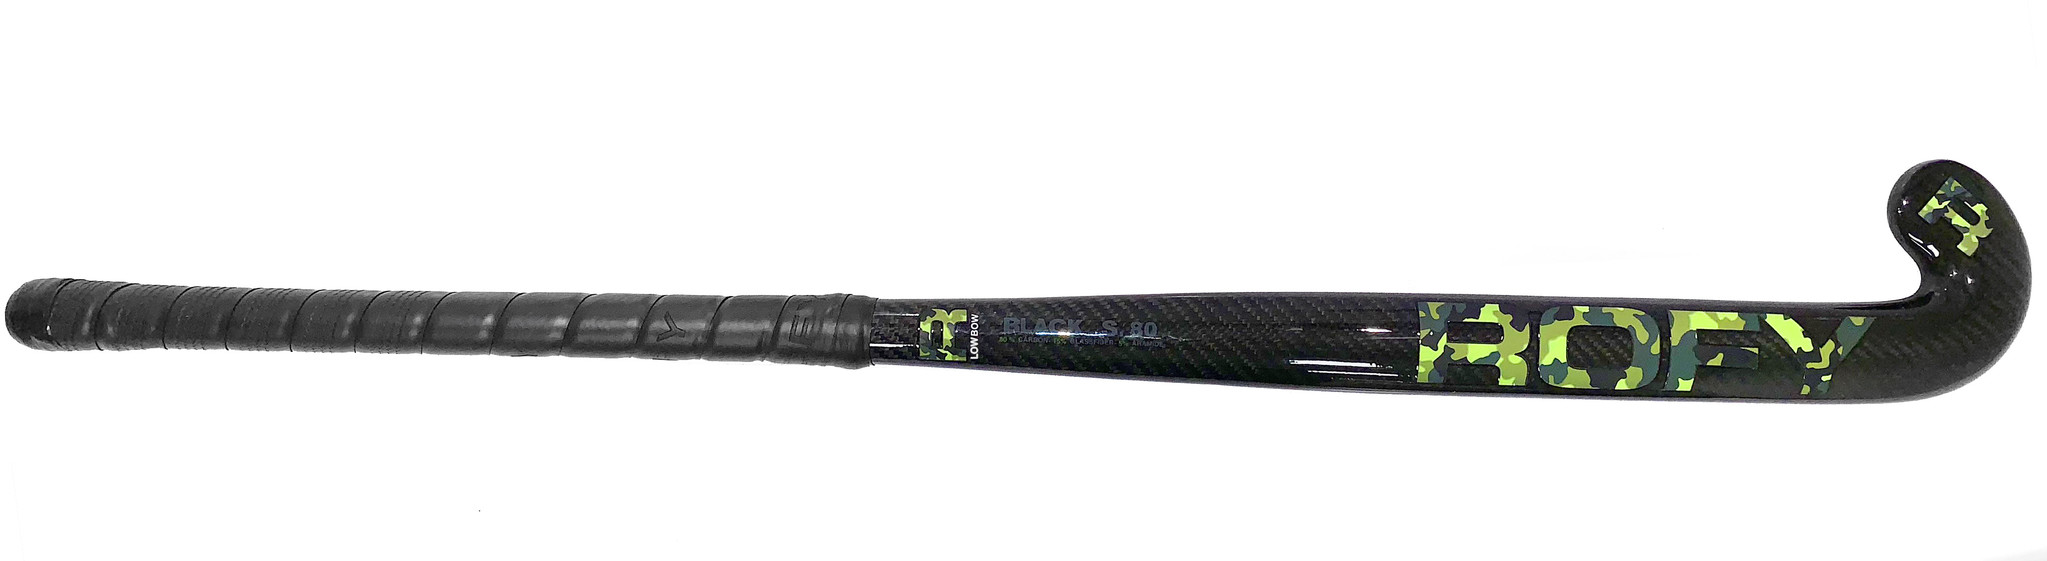 ROFY Black S. 80% Carbon Low Bow